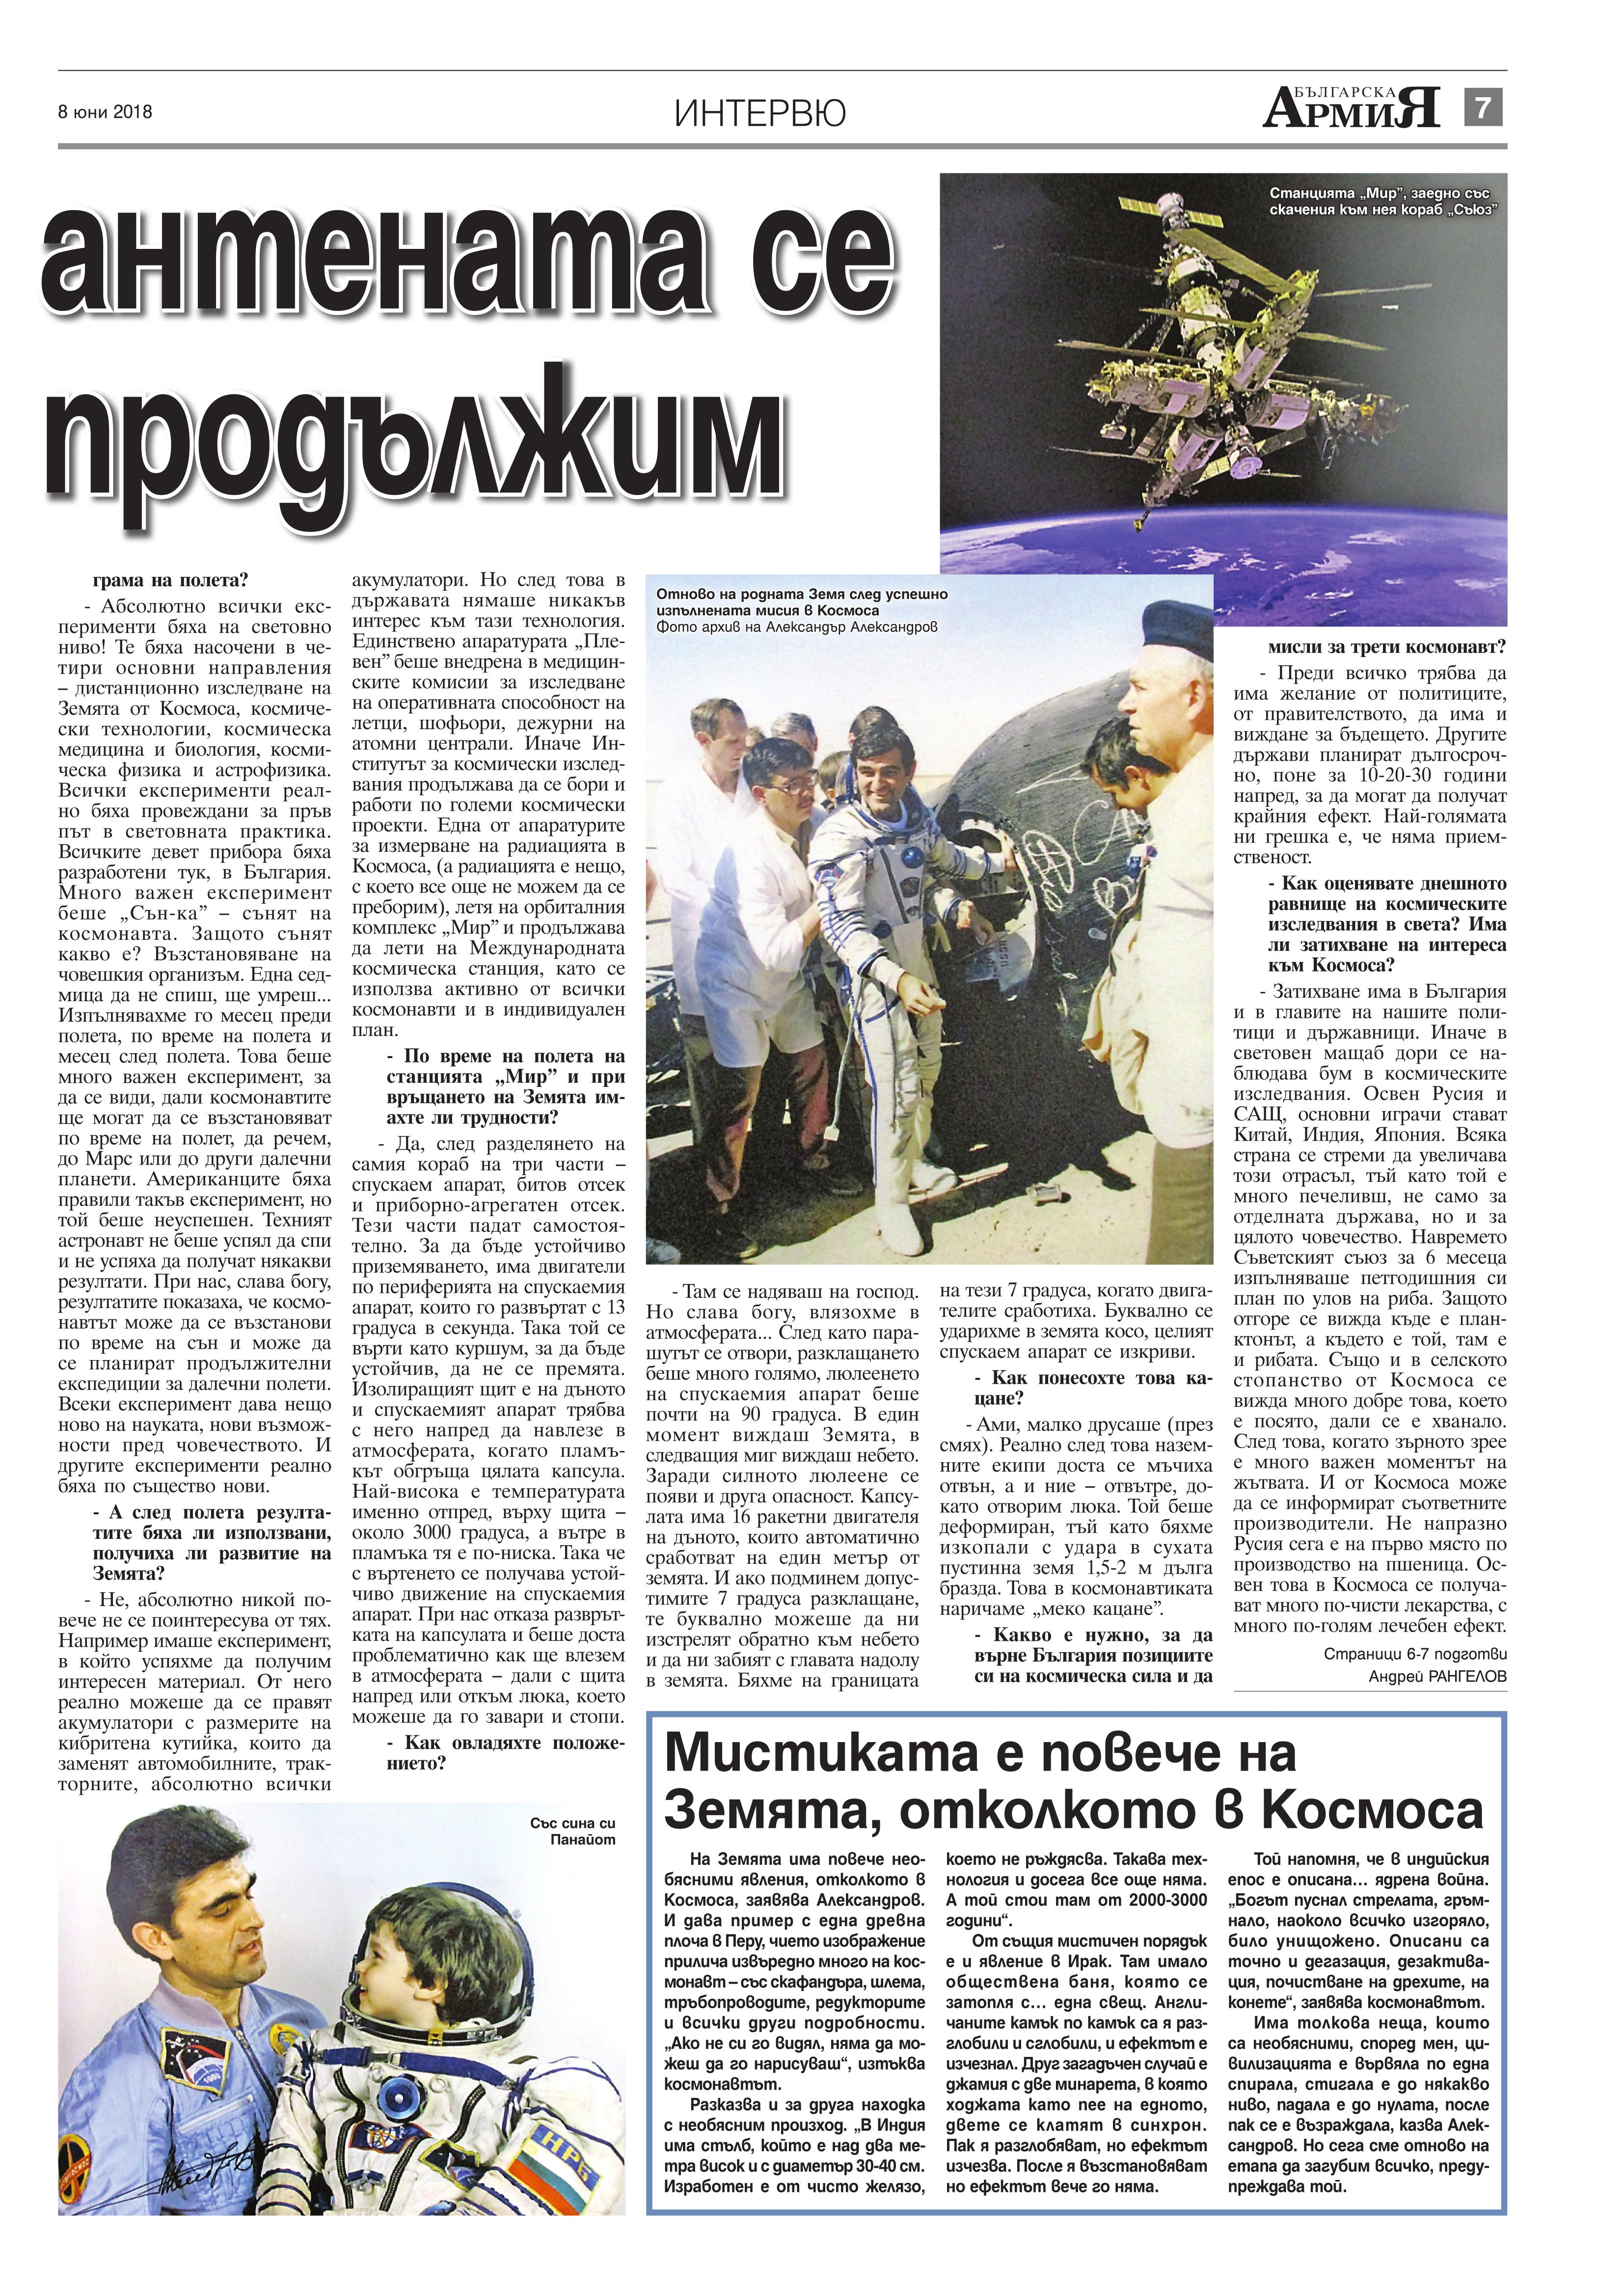 http://armymedia.bg/wp-content/uploads/2015/06/07.page1_-51.jpg